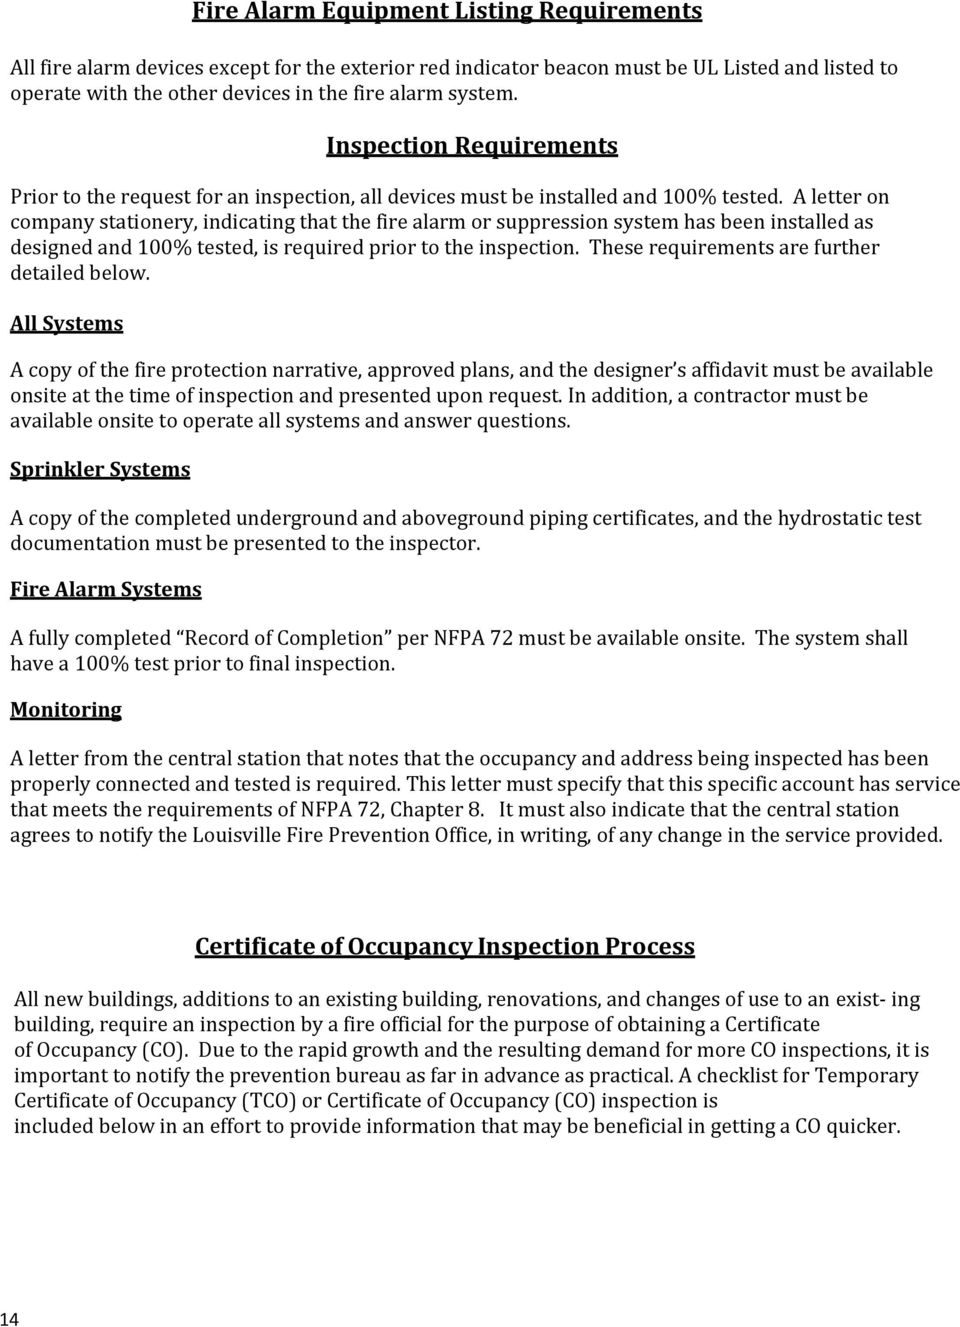 A letter on company stationery, indicating that the fire alarm or suppression system has been installed as designed and 100% tested, is required prior to the inspection.